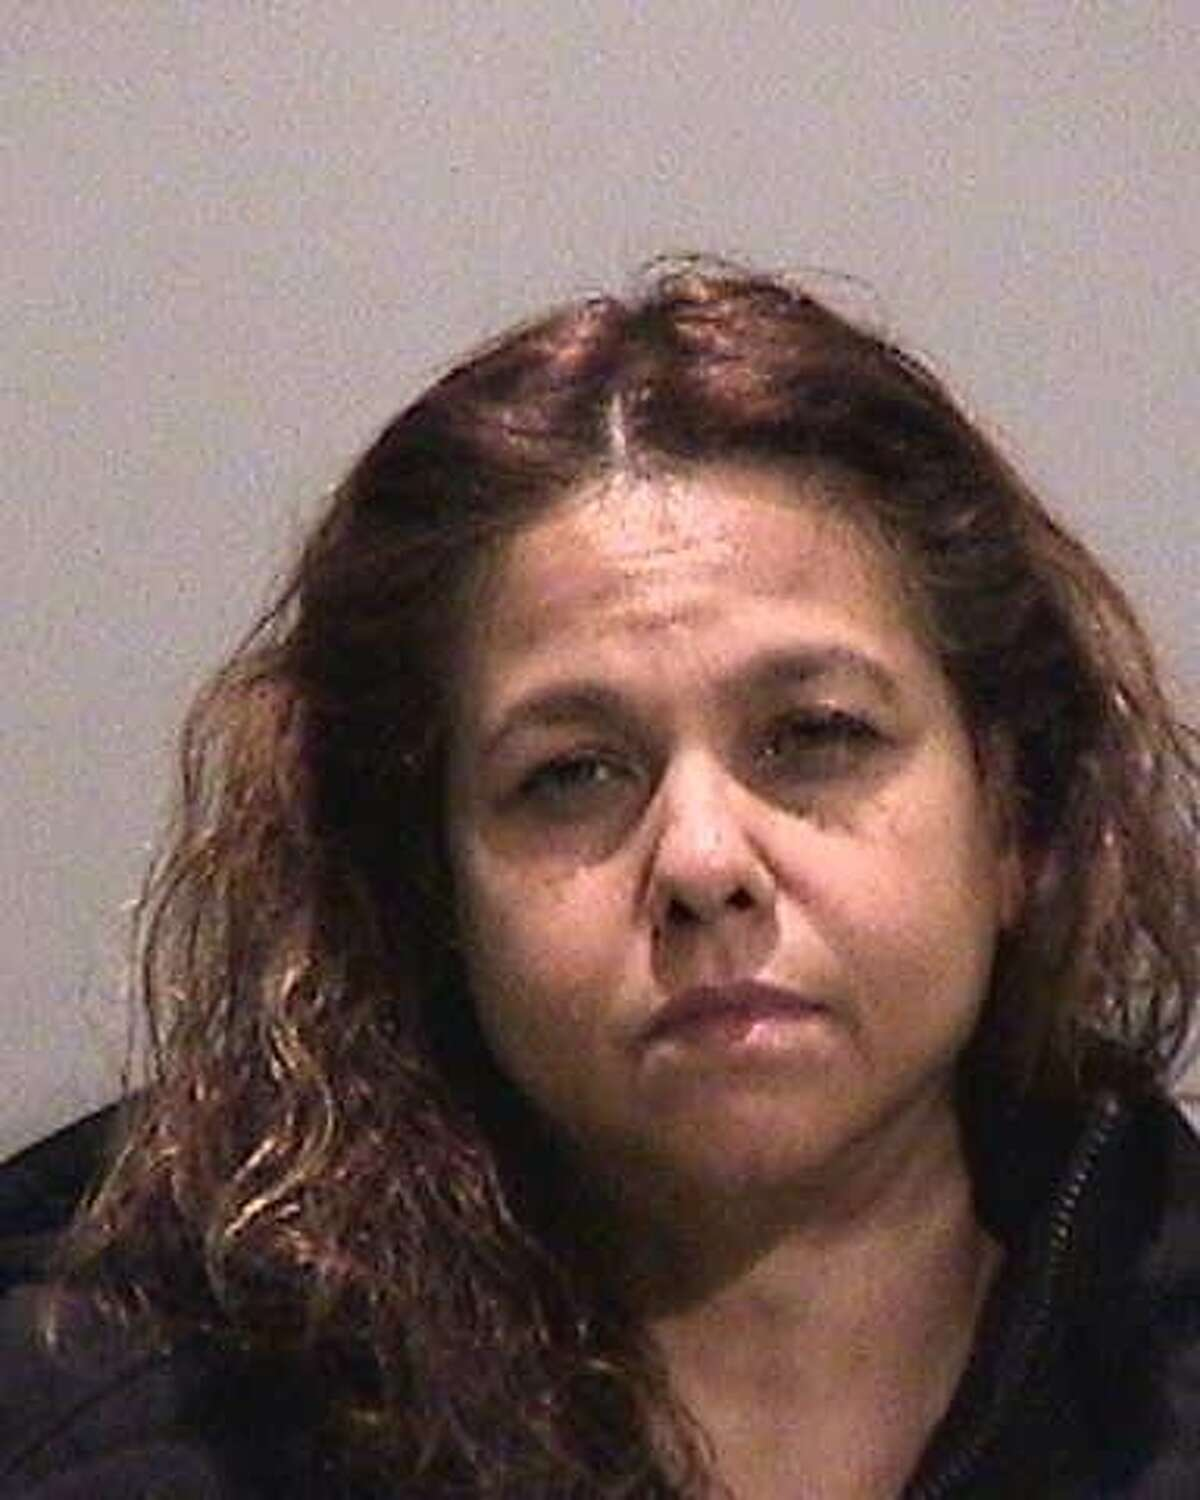 Maria Moore was arrested Dec. 18, 2018 and s charged with murdering Fremont chef Dominic Sarkar.